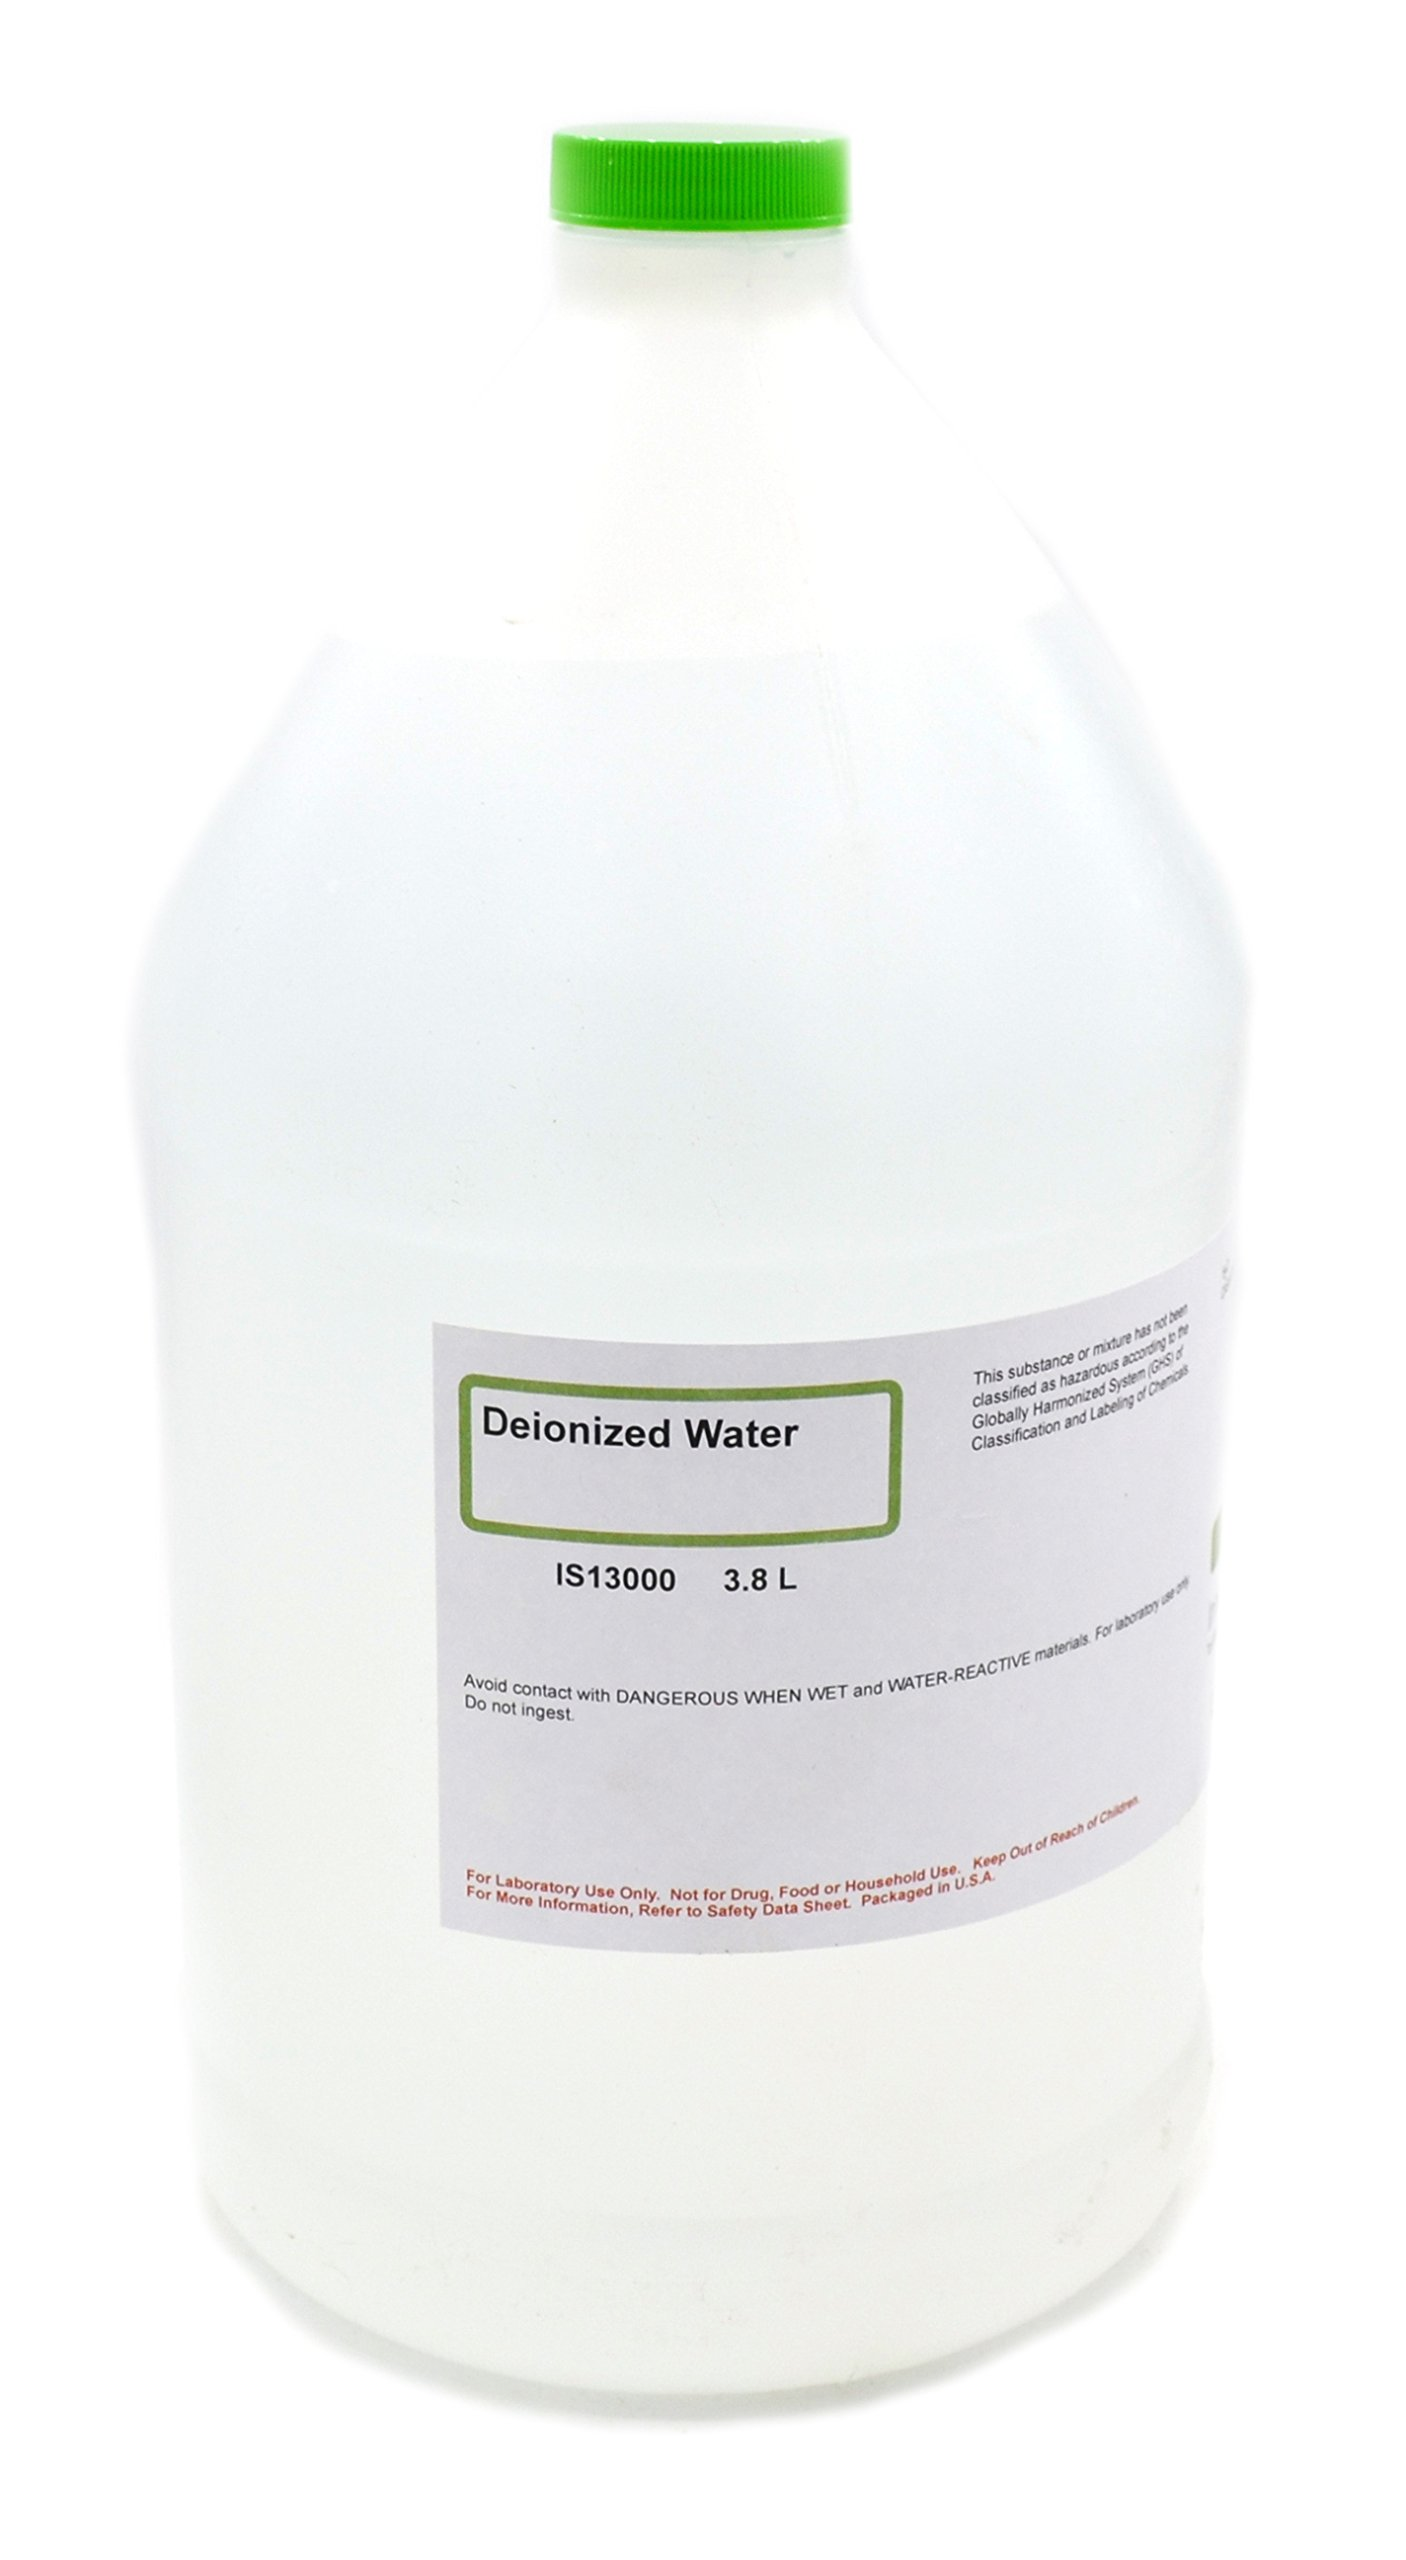 Deionized Water, 3.8L - The Curated Chemical Collection